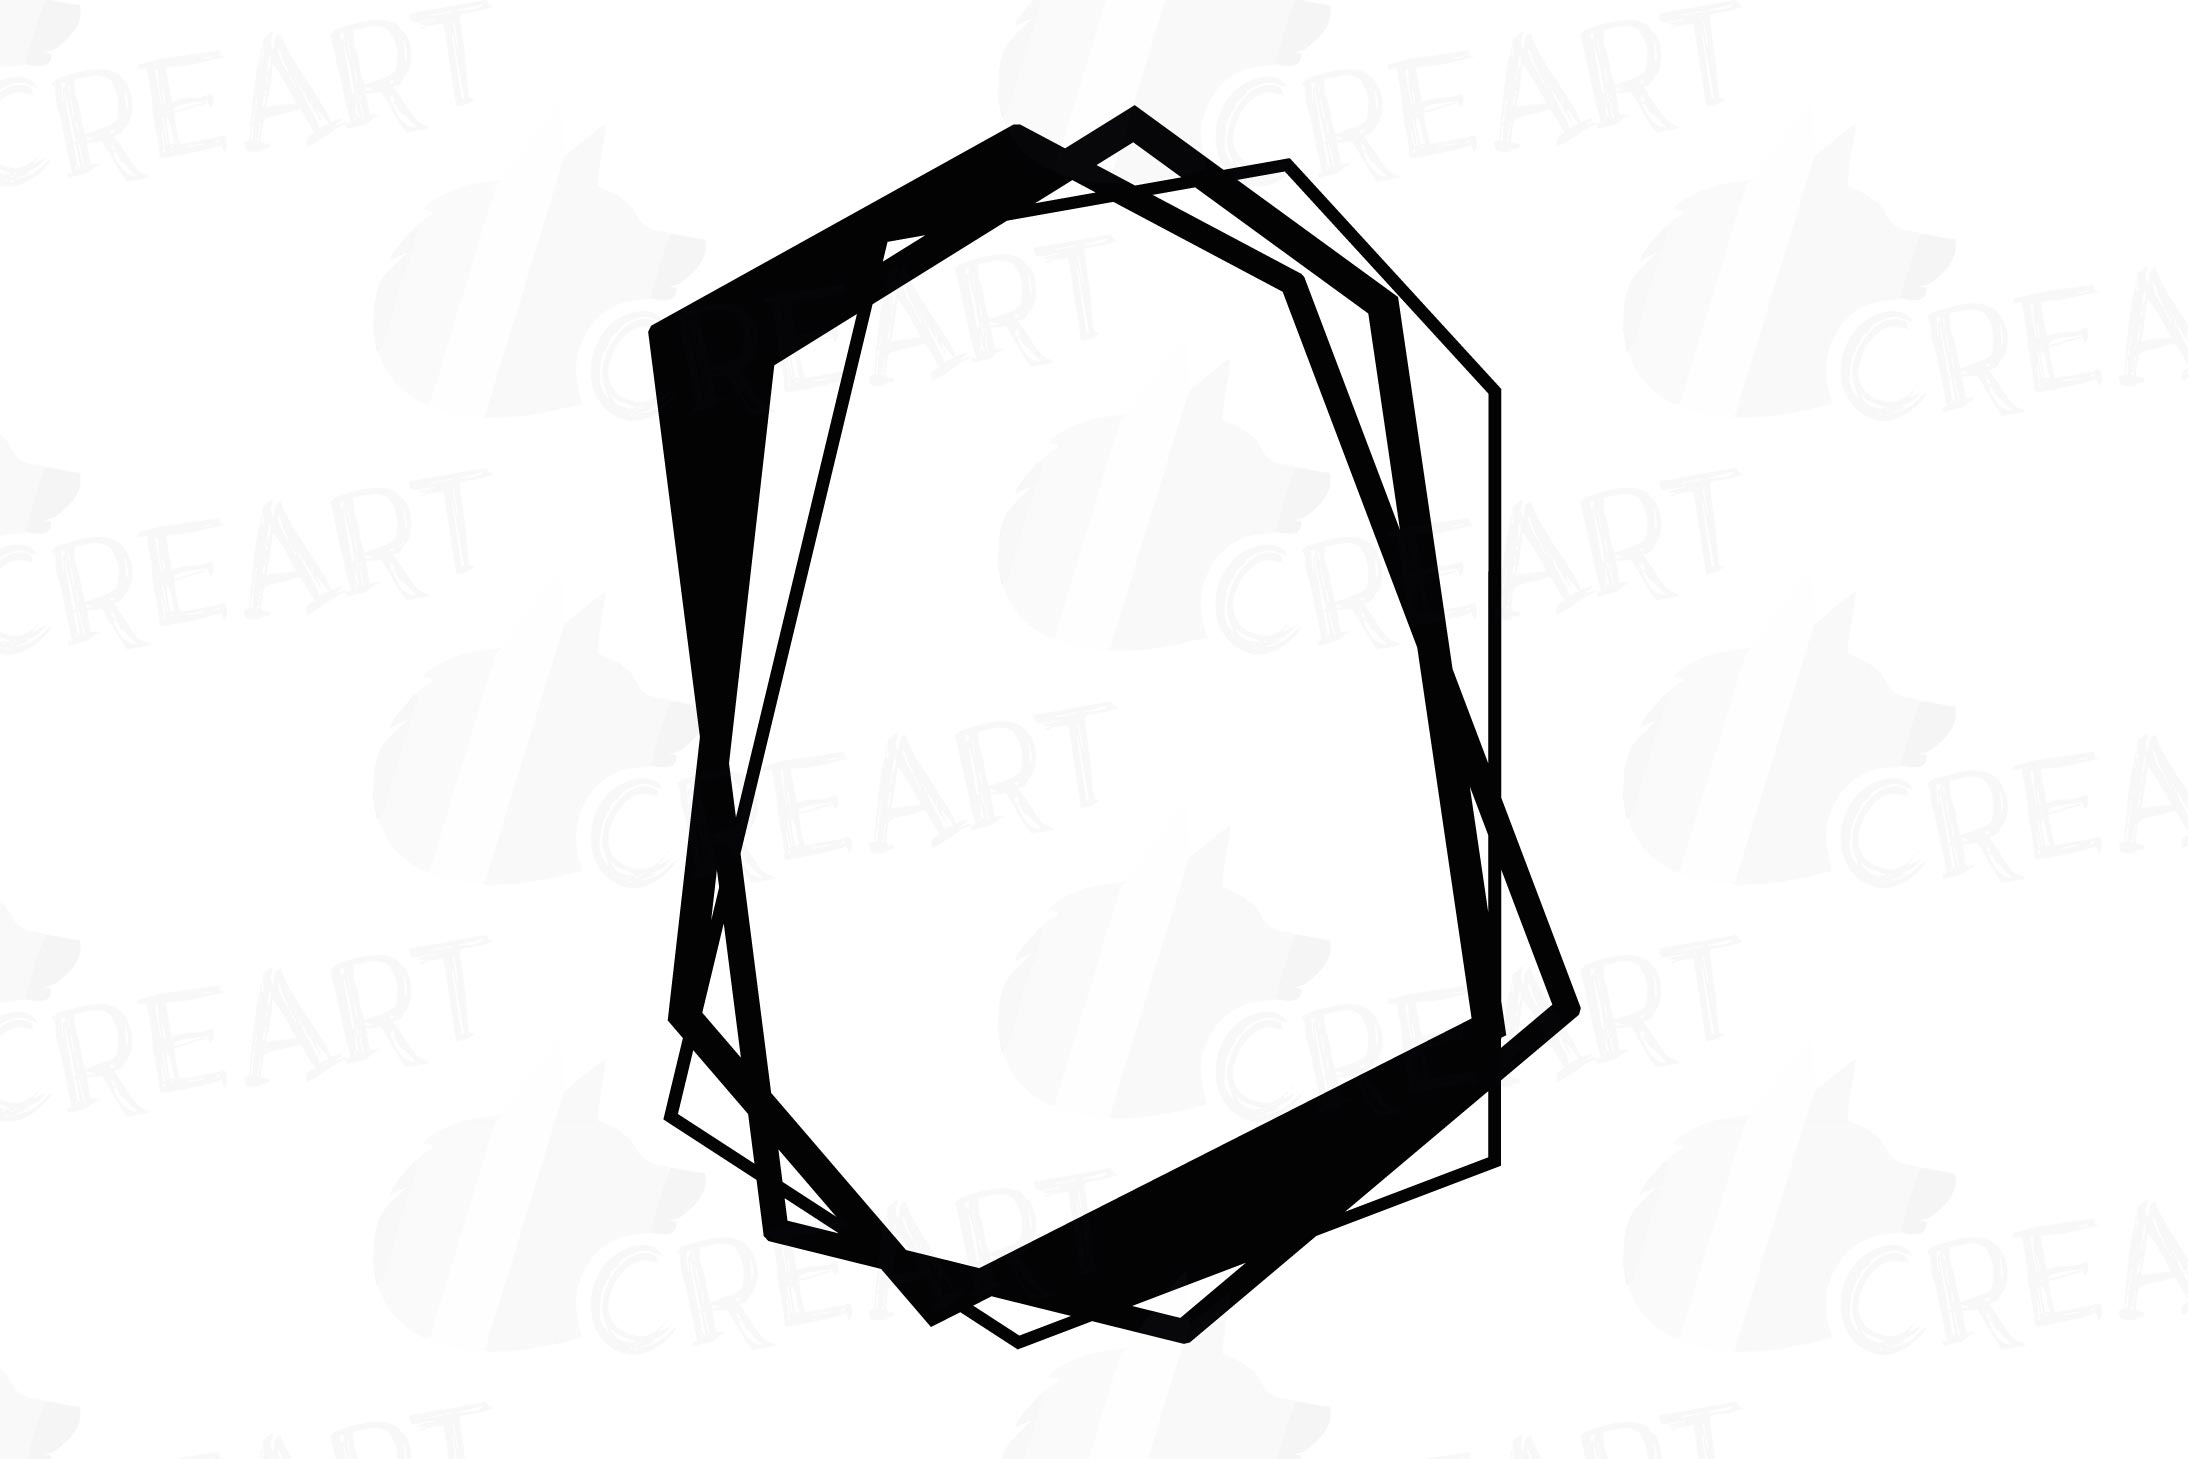 Chaotic geometric black frames, lineal frames clip art example image 5